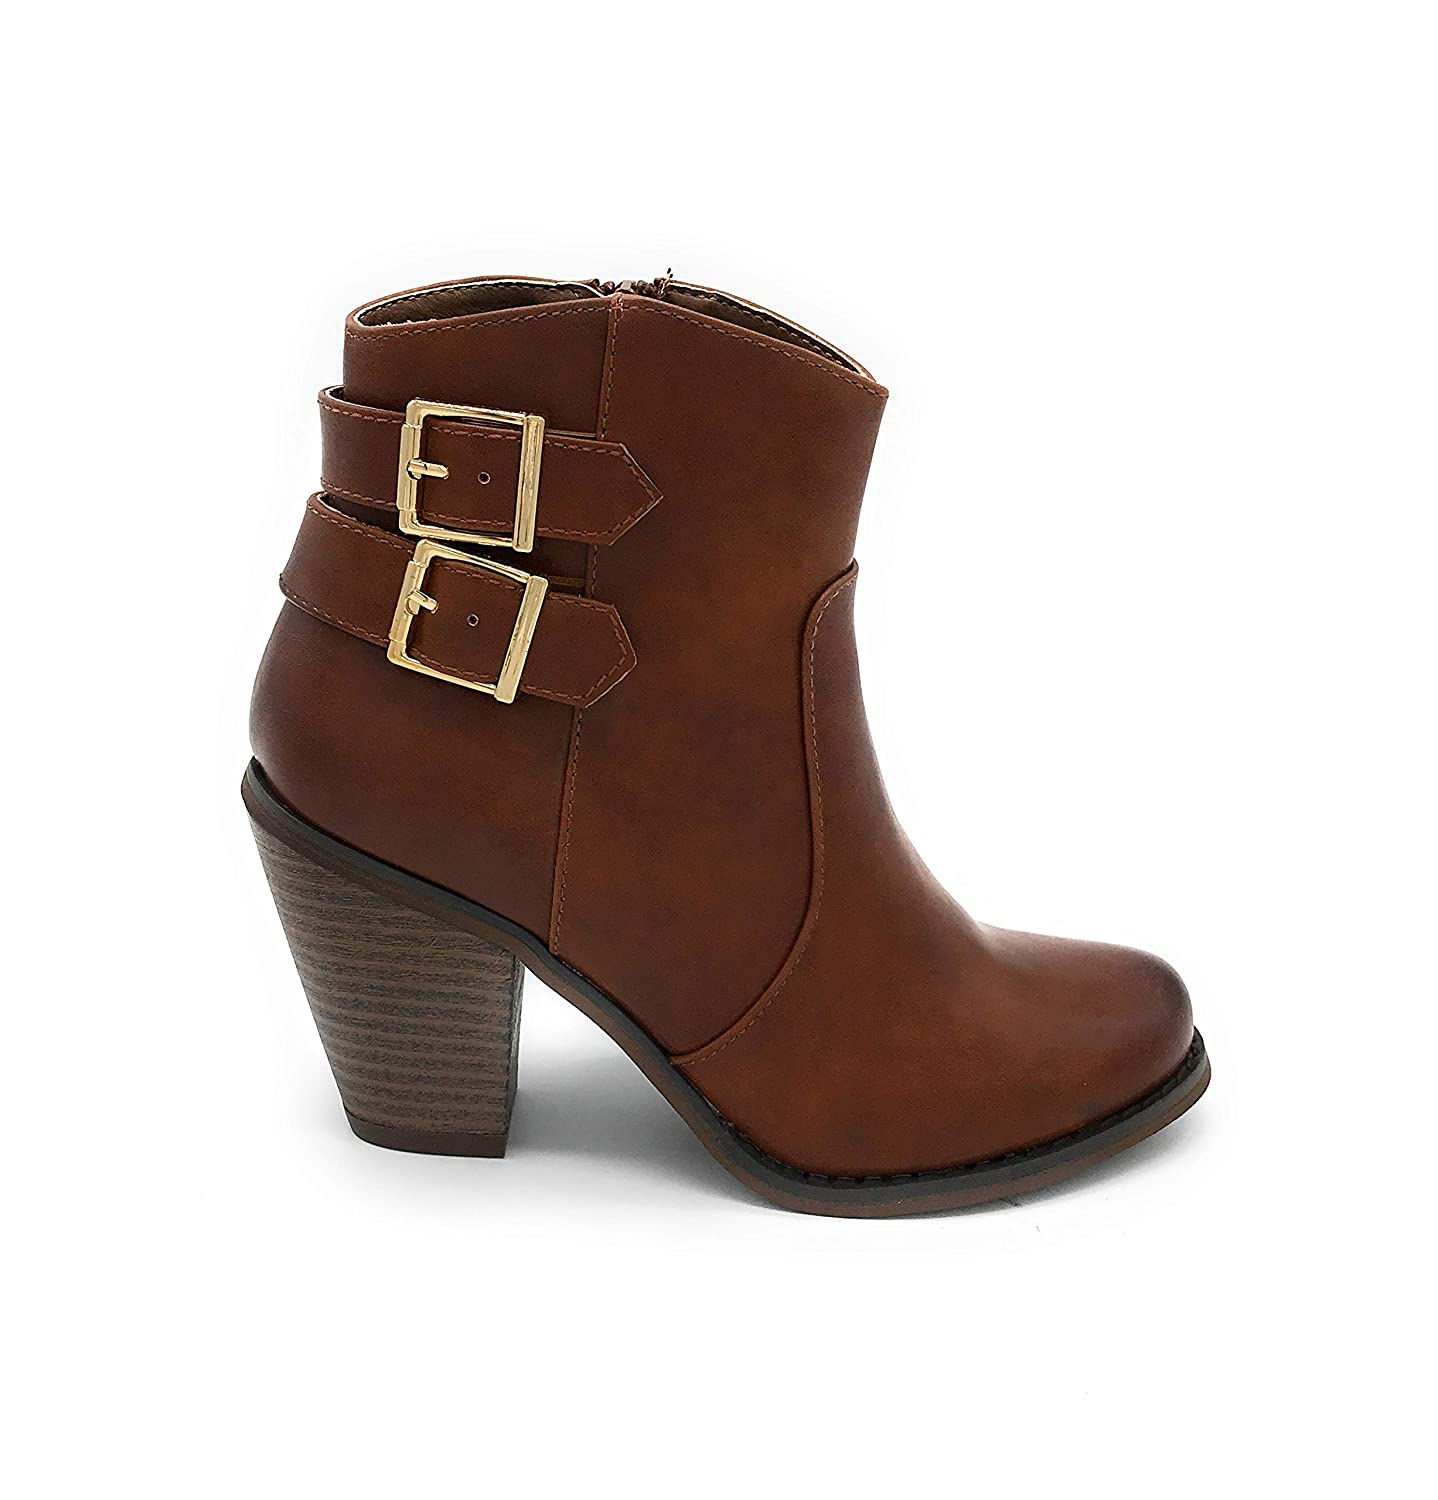 01tan bluee Berry EASY21 Women Fashion Ankle Boots Casual Short Bootie shoes